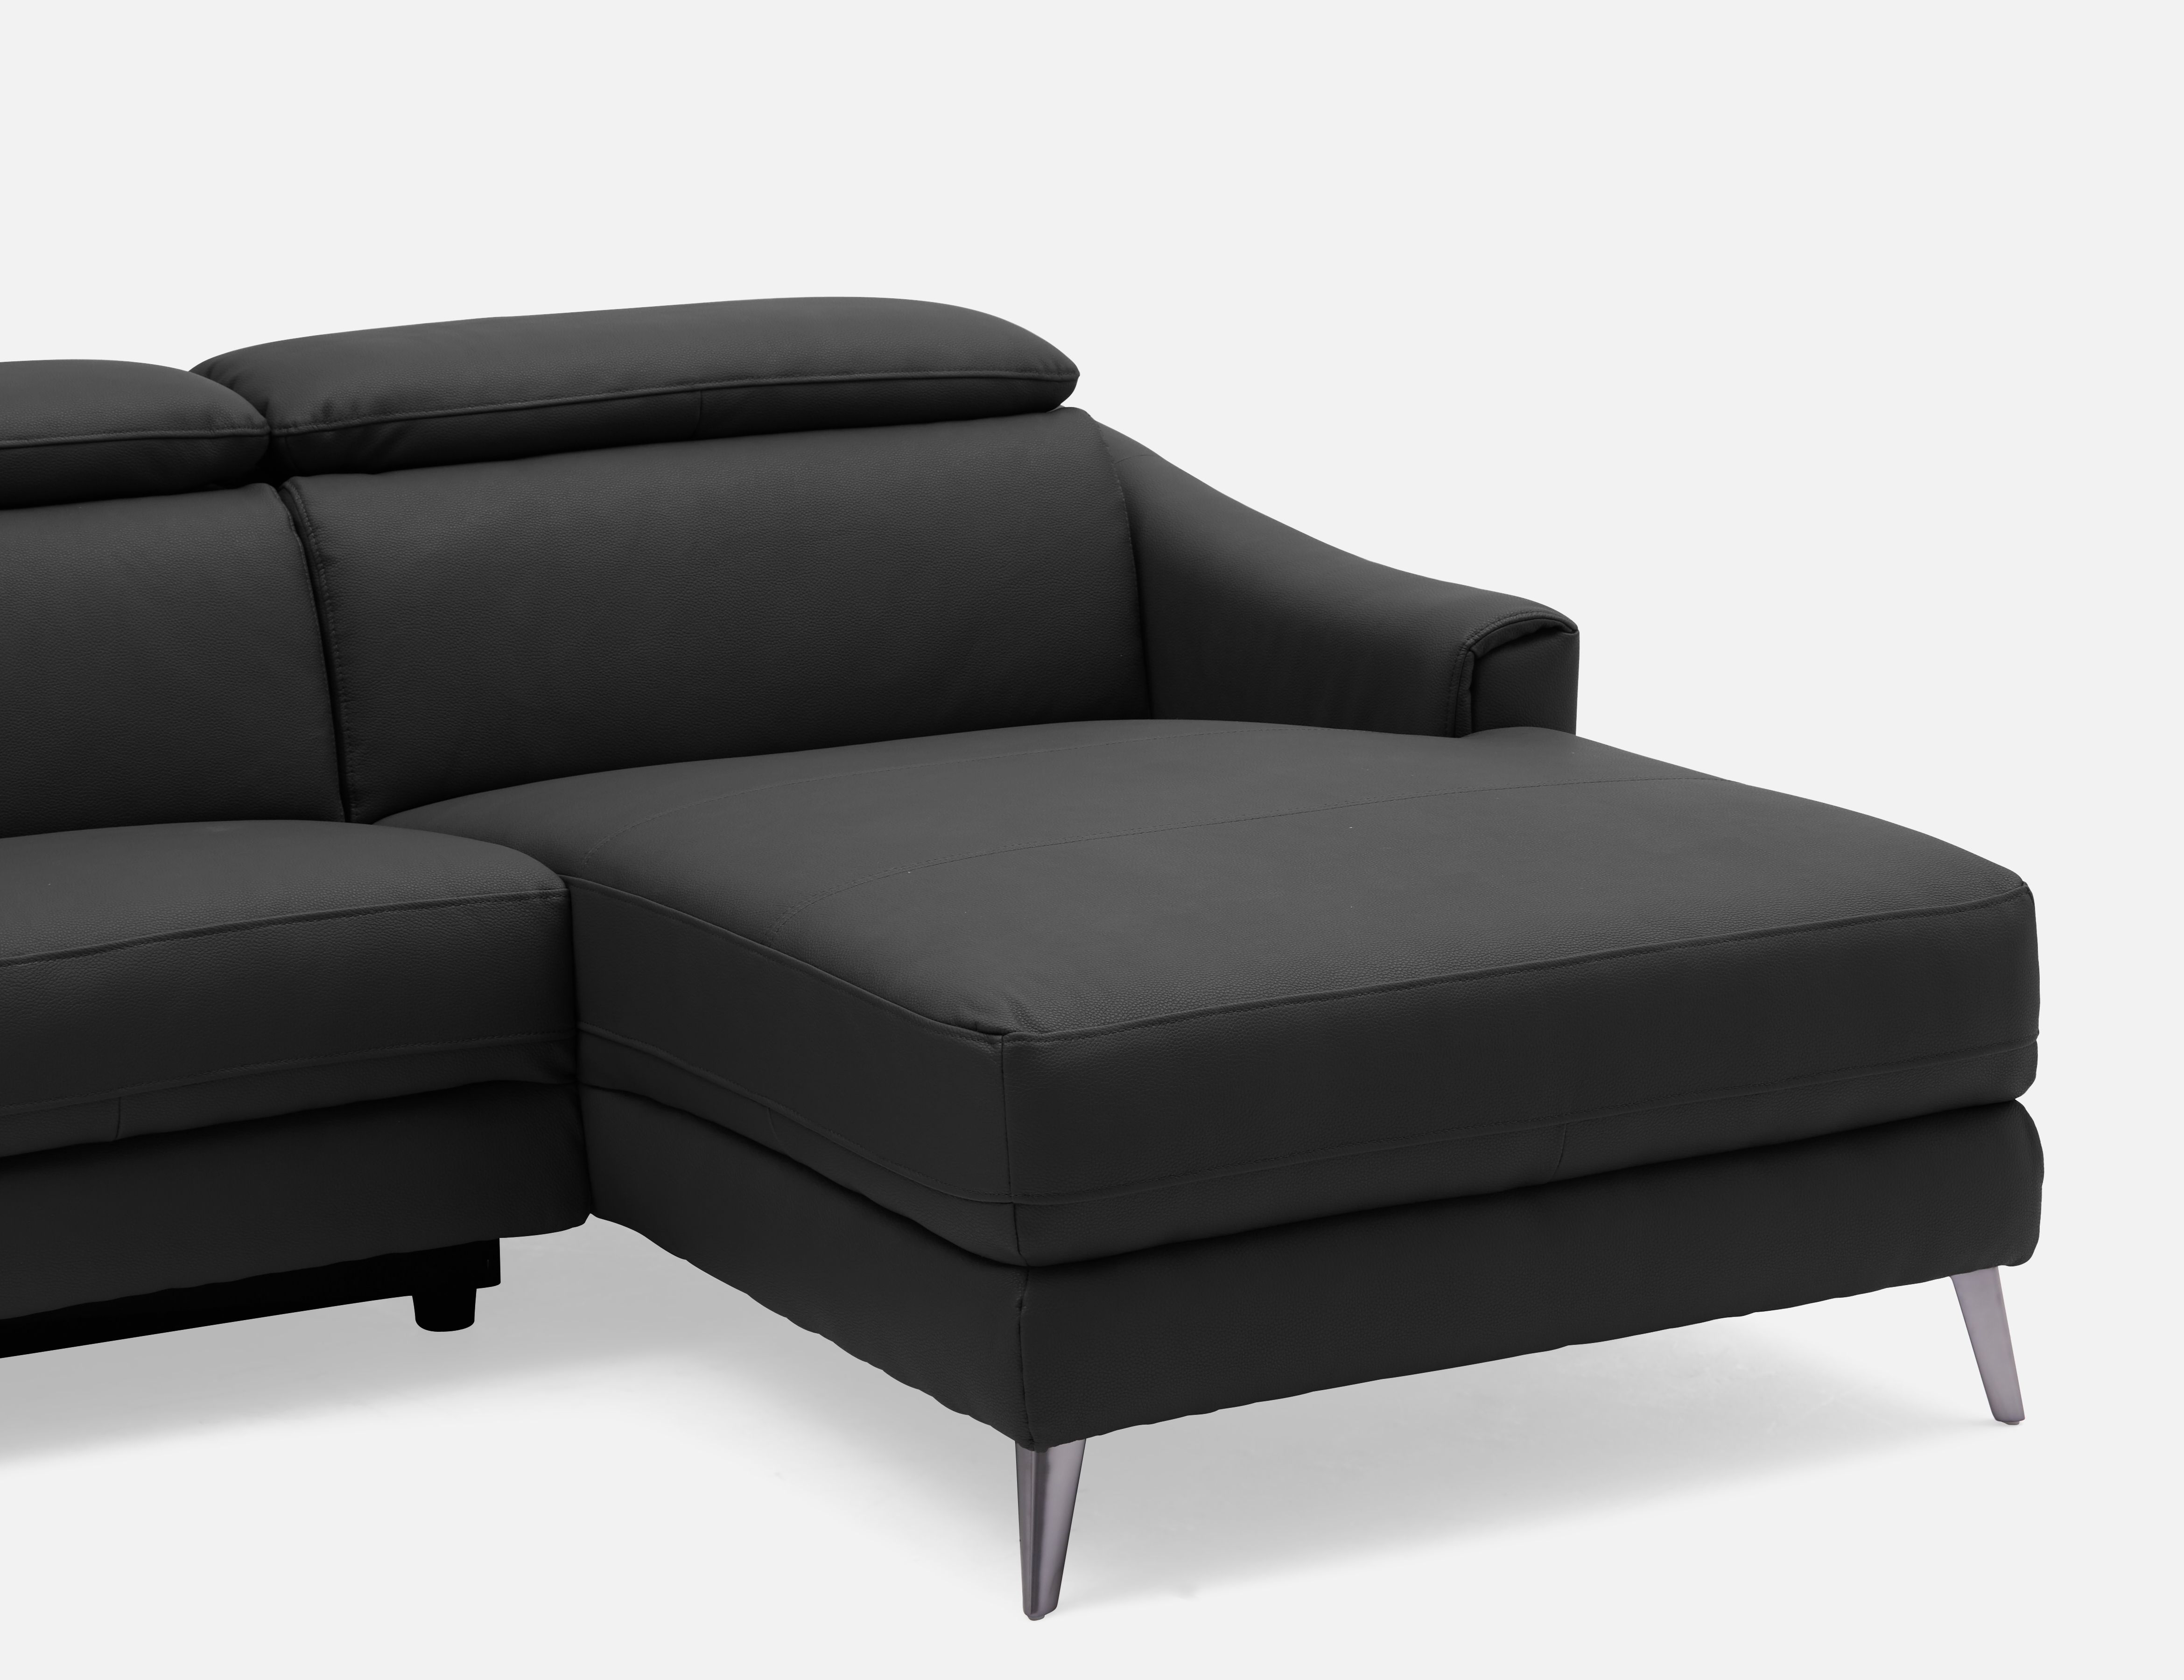 Reclining Lamont Right Facing 2019 Sectional Black SofaStruc In orxCdBeW